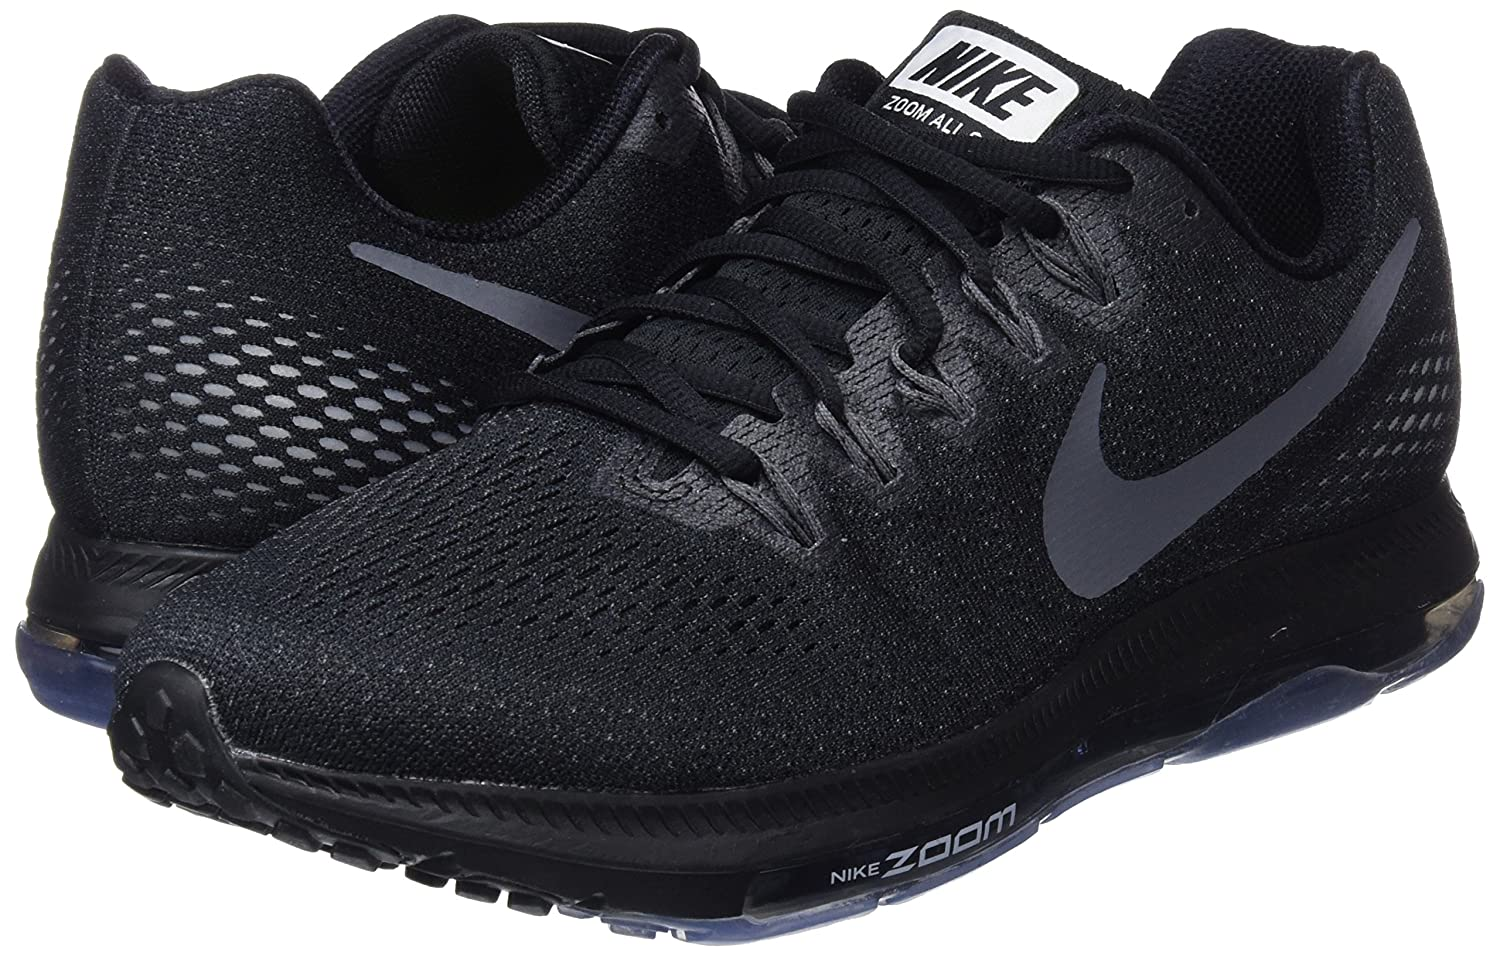 eaa51dfc8a Amazon.com | Nike Men's Zoom All Out Low, BLACK/DARK GREY-ANTHRACITE, 7.5 M  US | Road Running